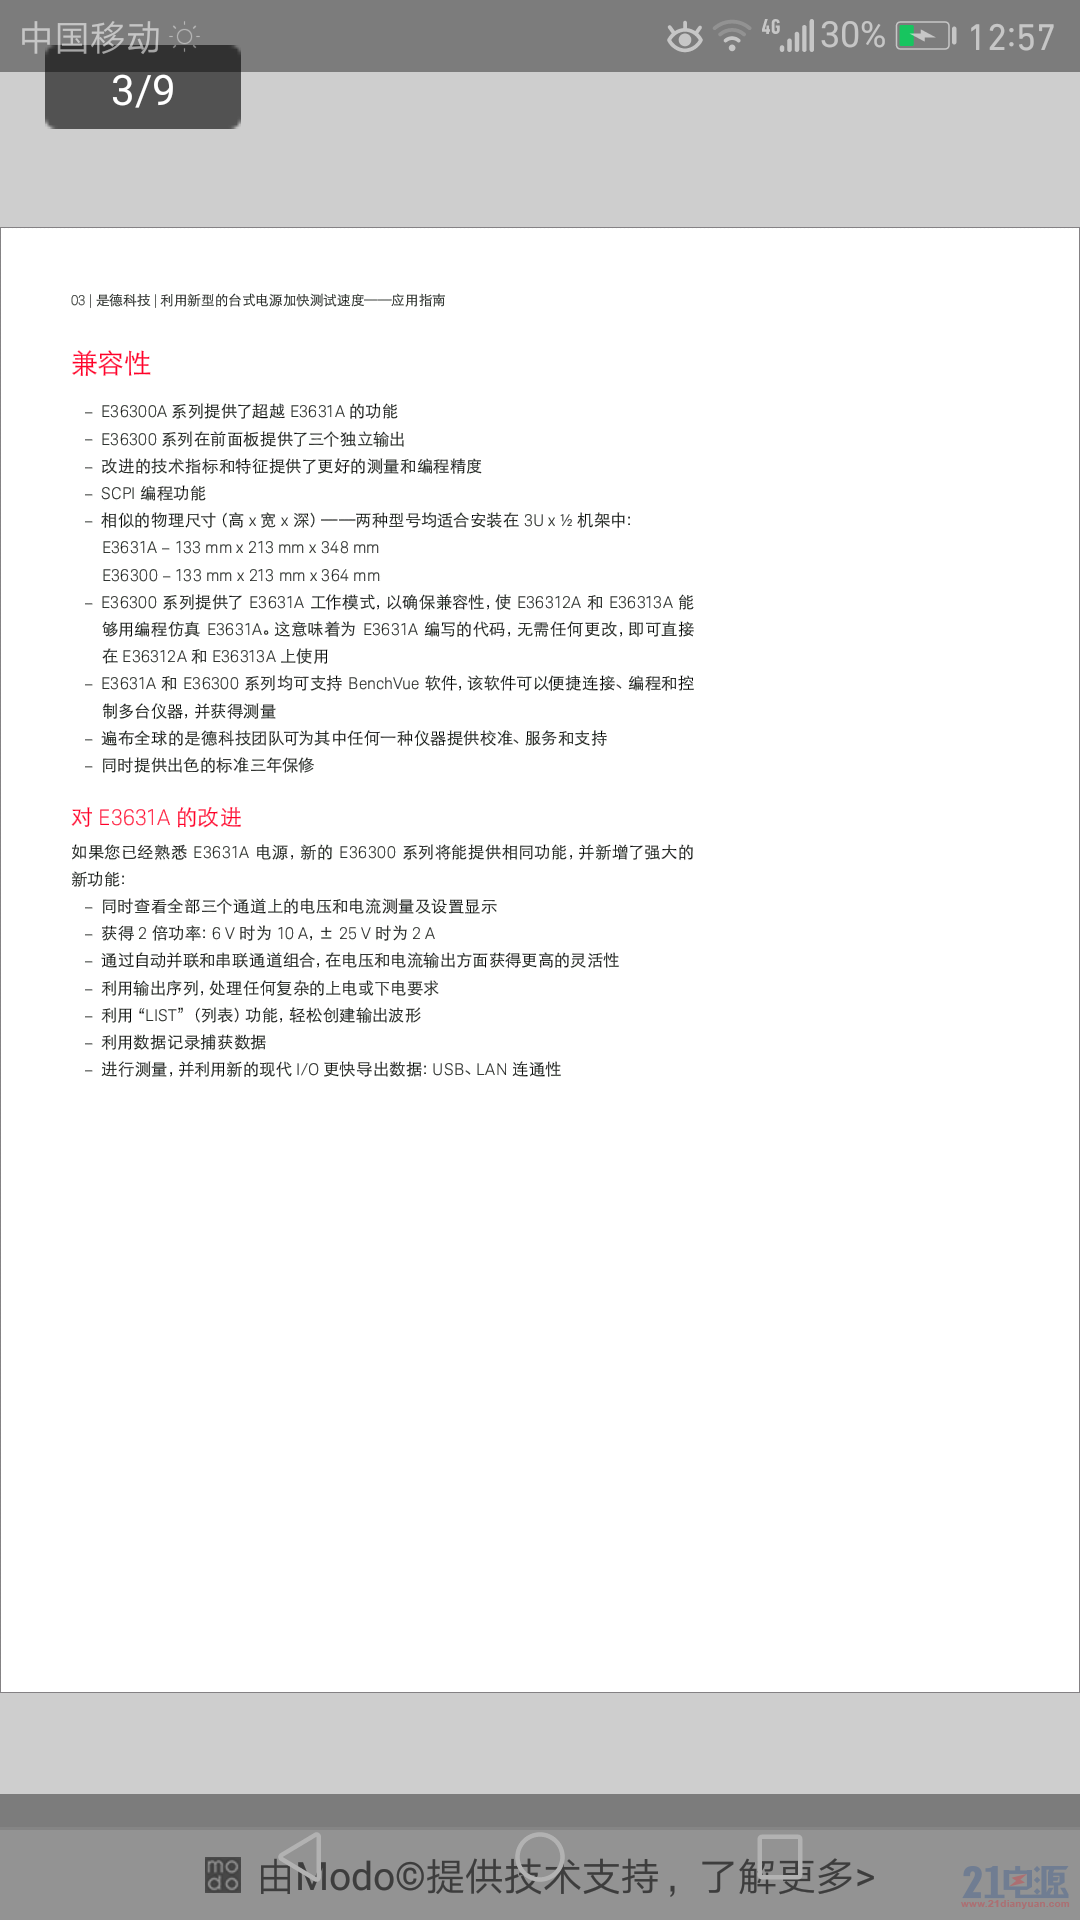 Screenshot_20180117-125707.png